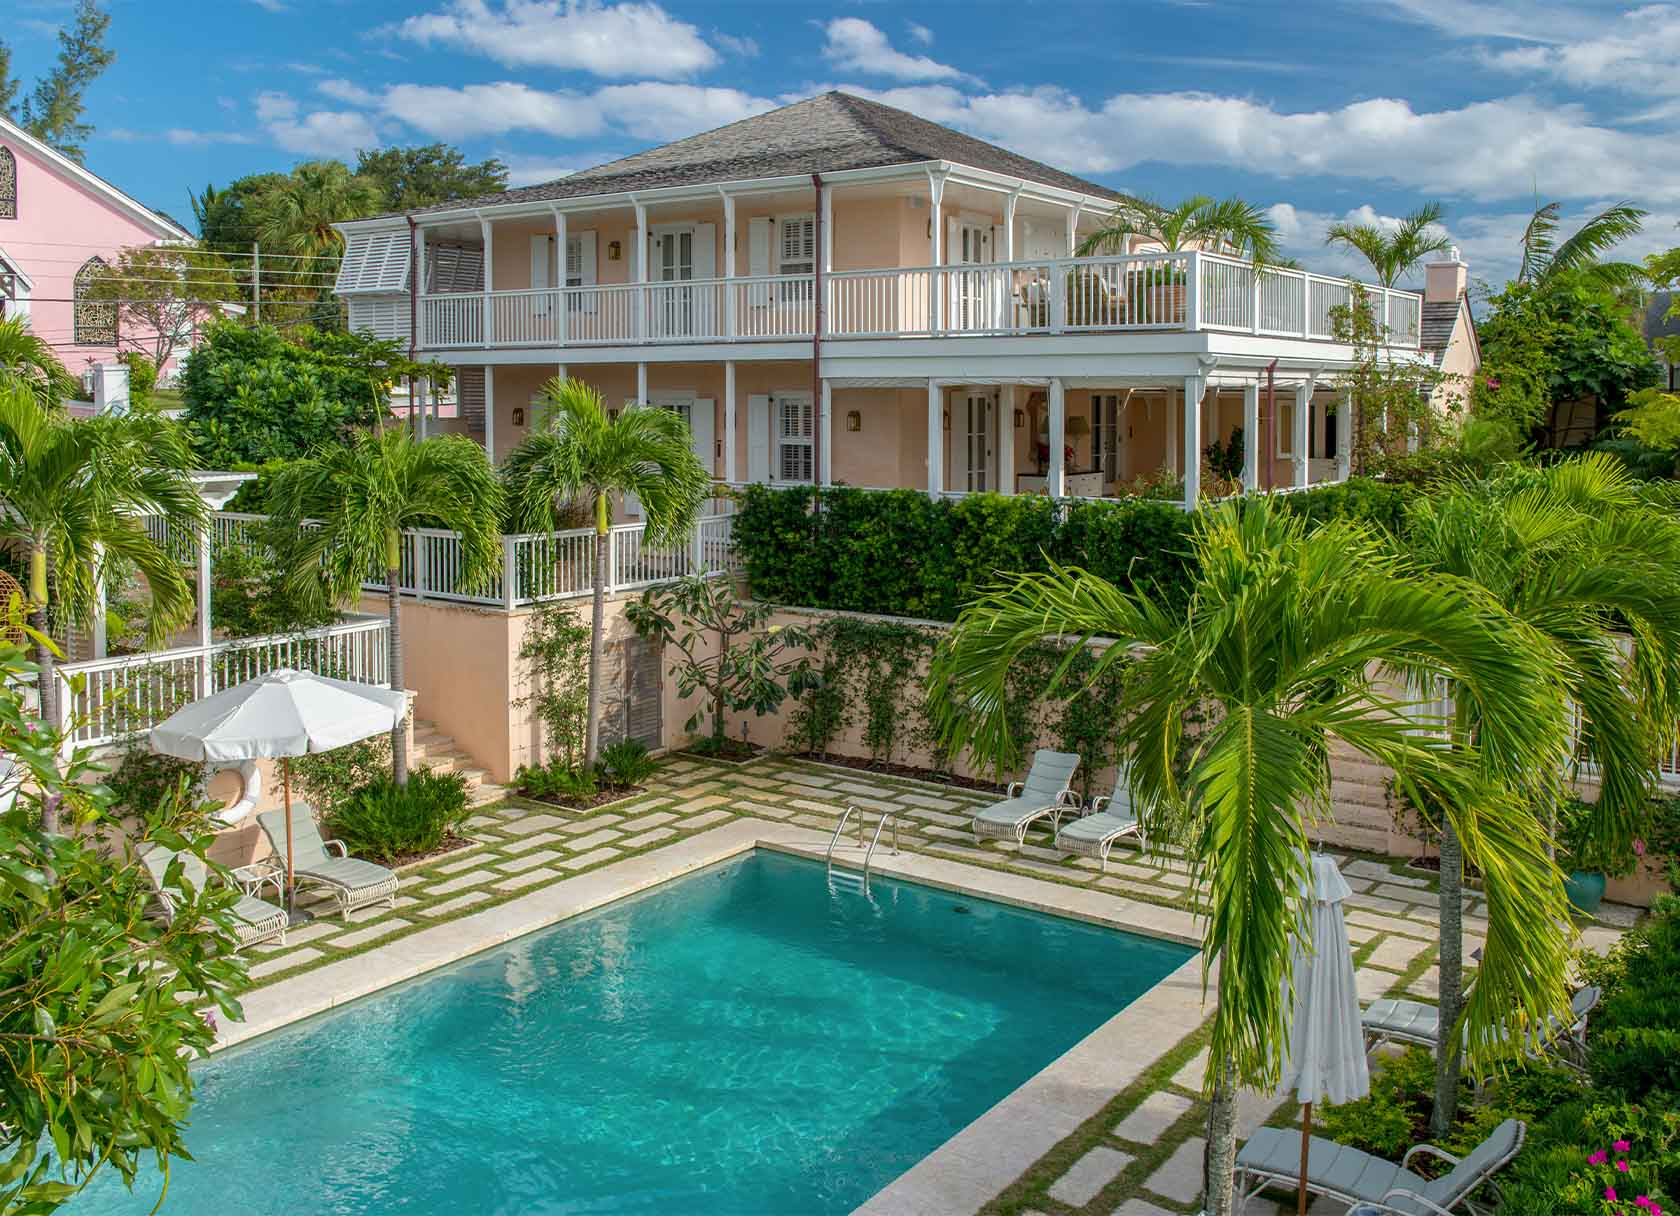 Bahama House Exterior with Pool Views - Dunmore Town, Bahamas - Eleven Experience